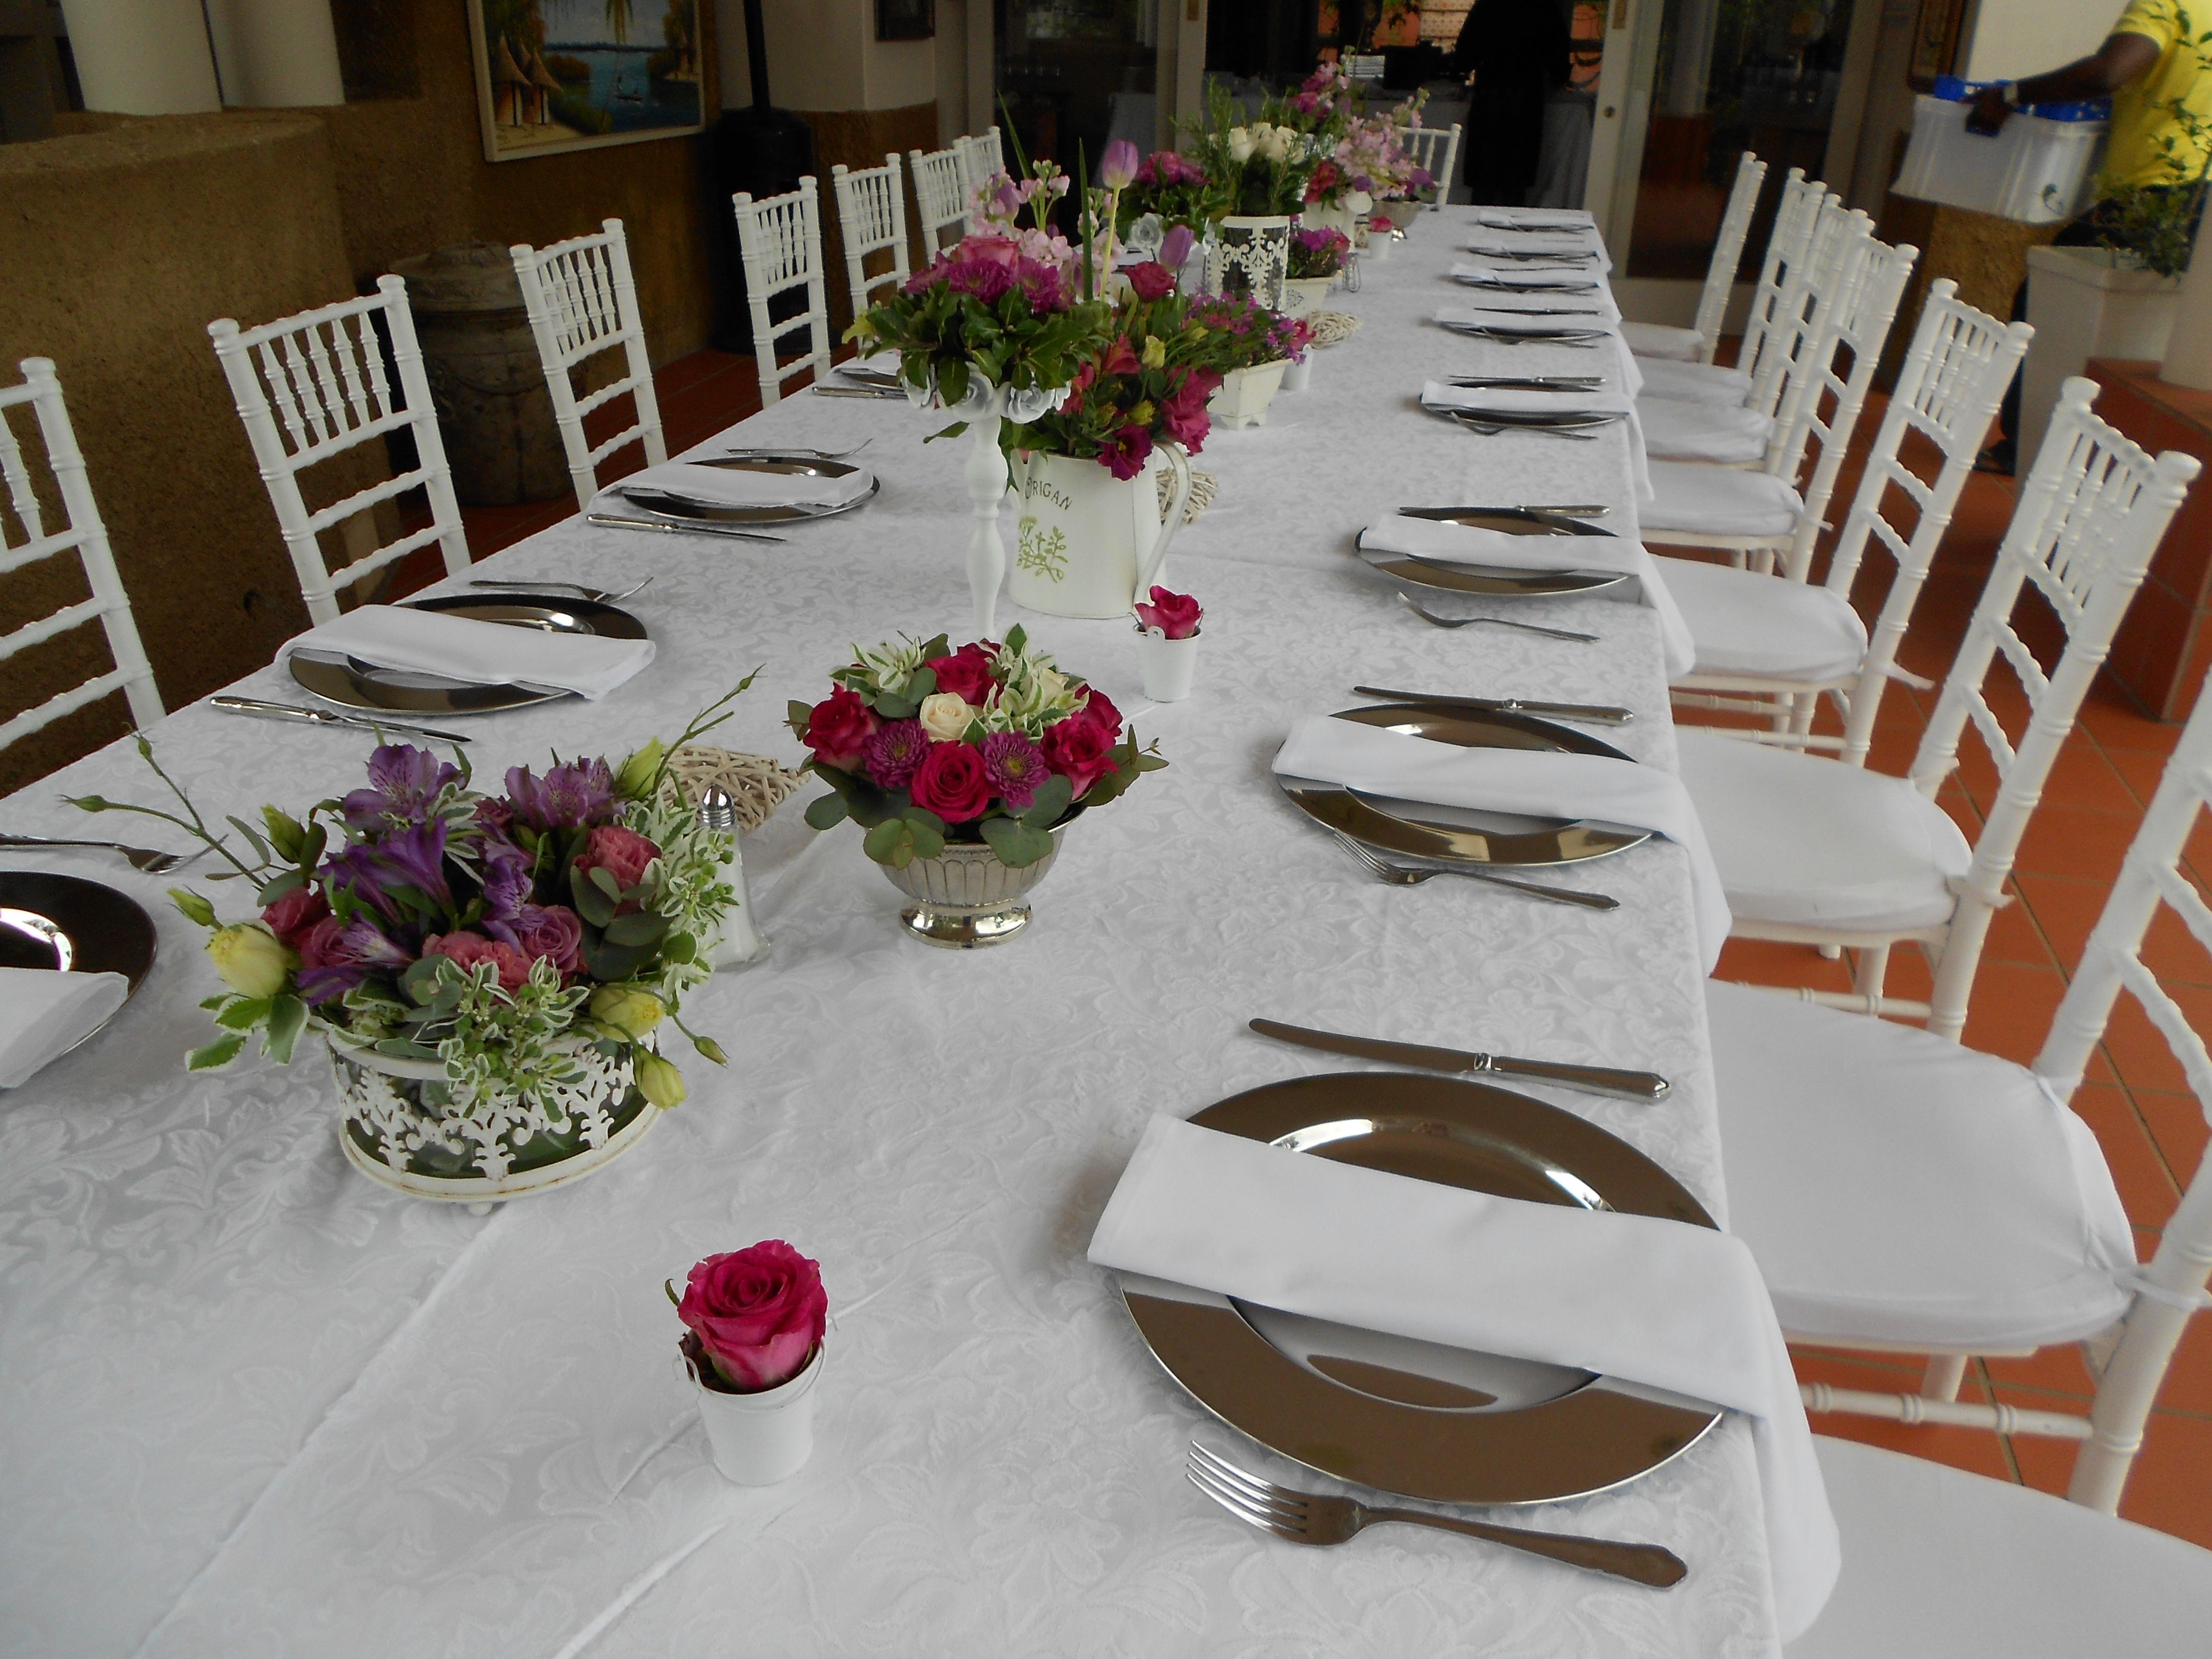 Table setting ideas outdoor wedding ideas pinterest for Pinterest outdoor wedding ideas